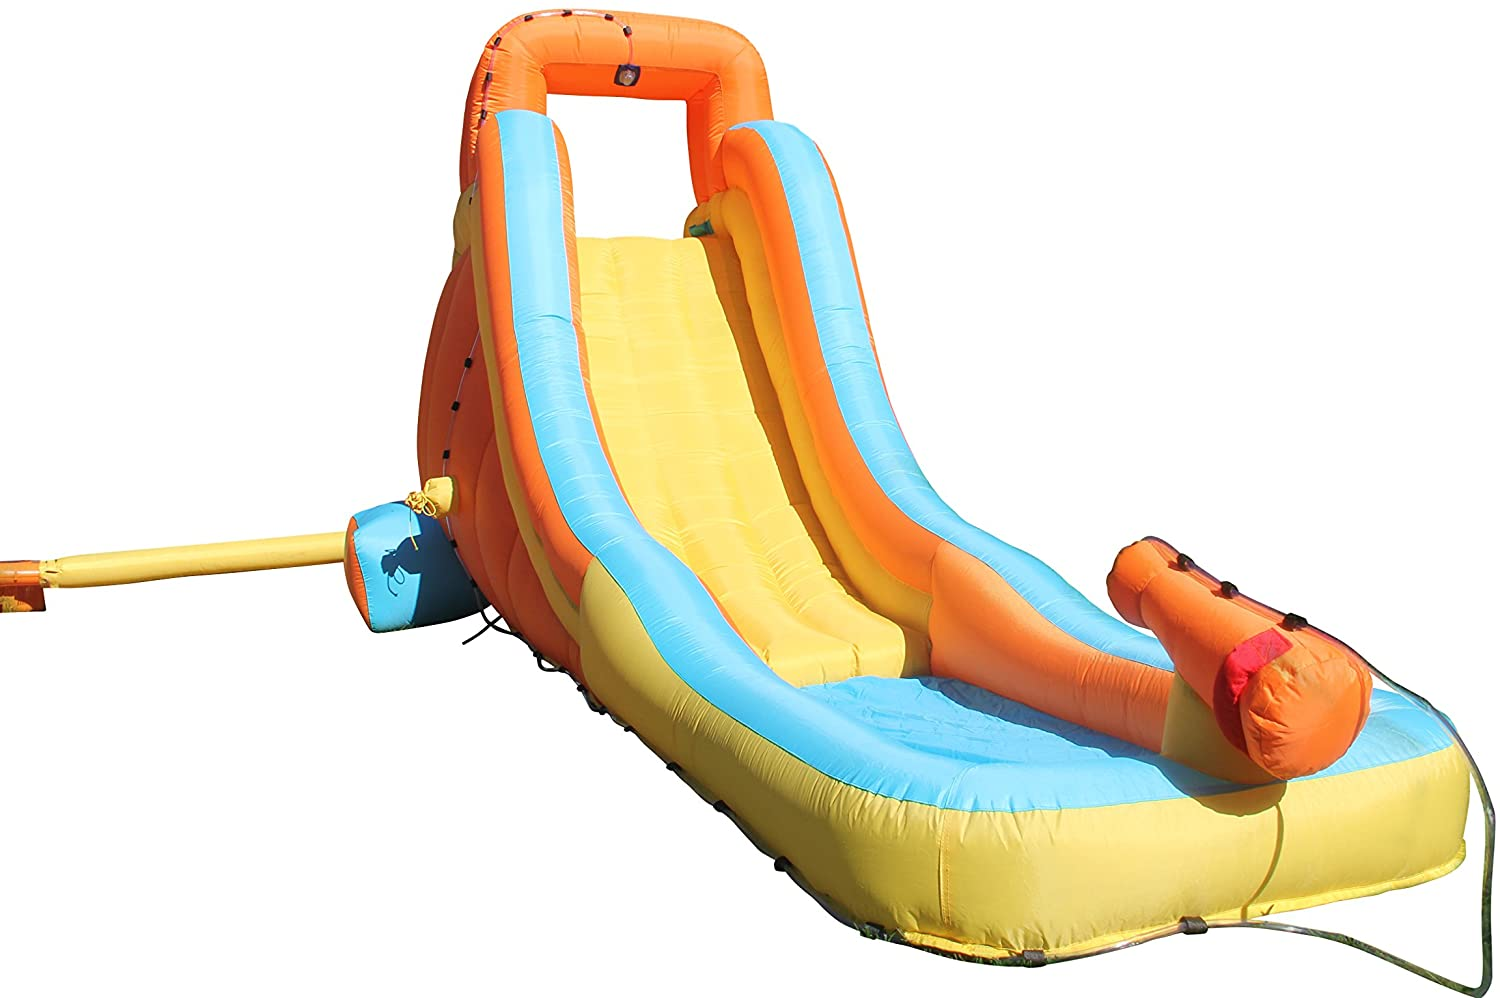 Sportspower My First Inflatable Pool Slide